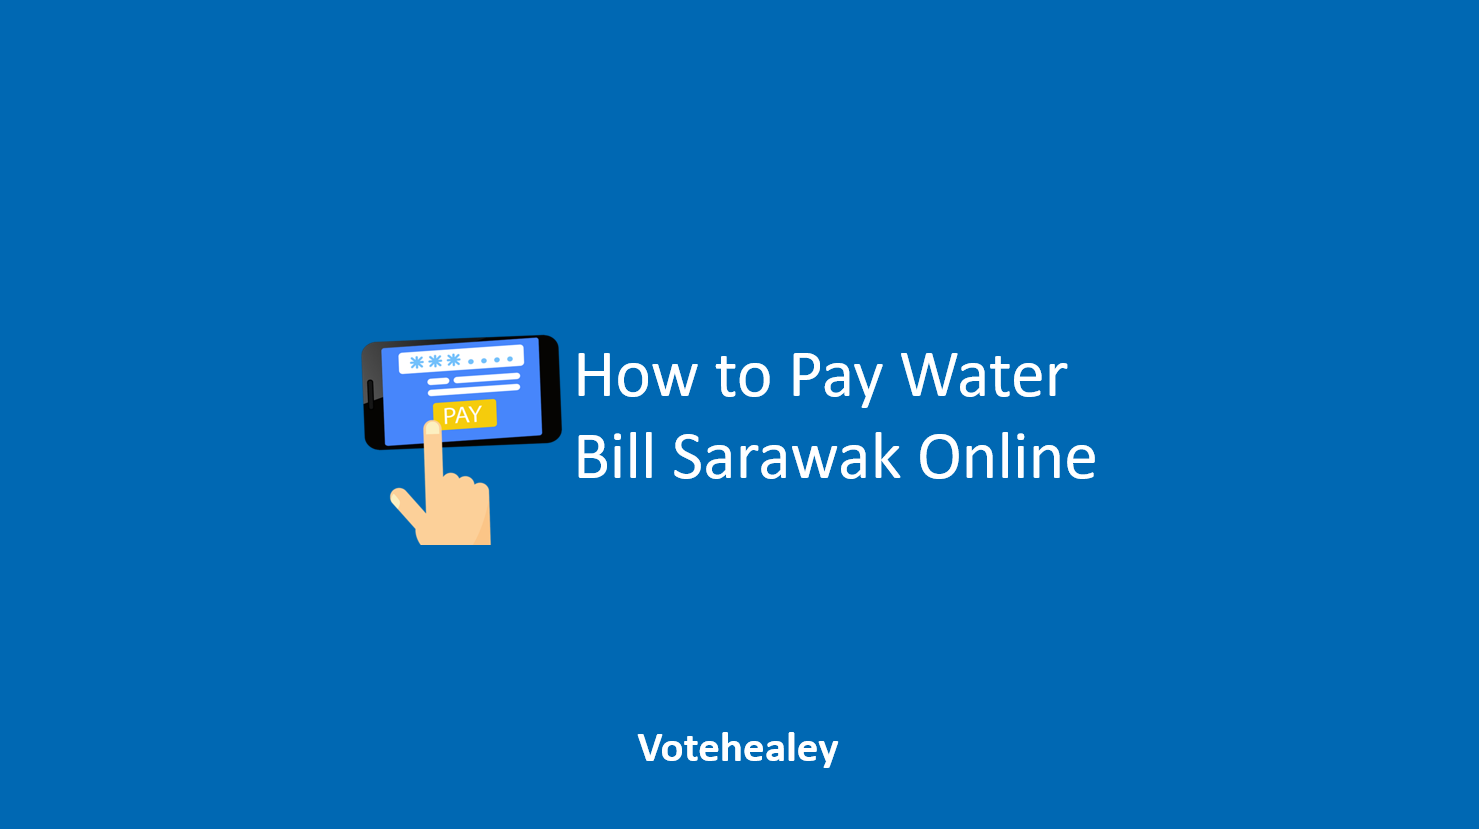 How to Pay Water Bill Sarawak Online